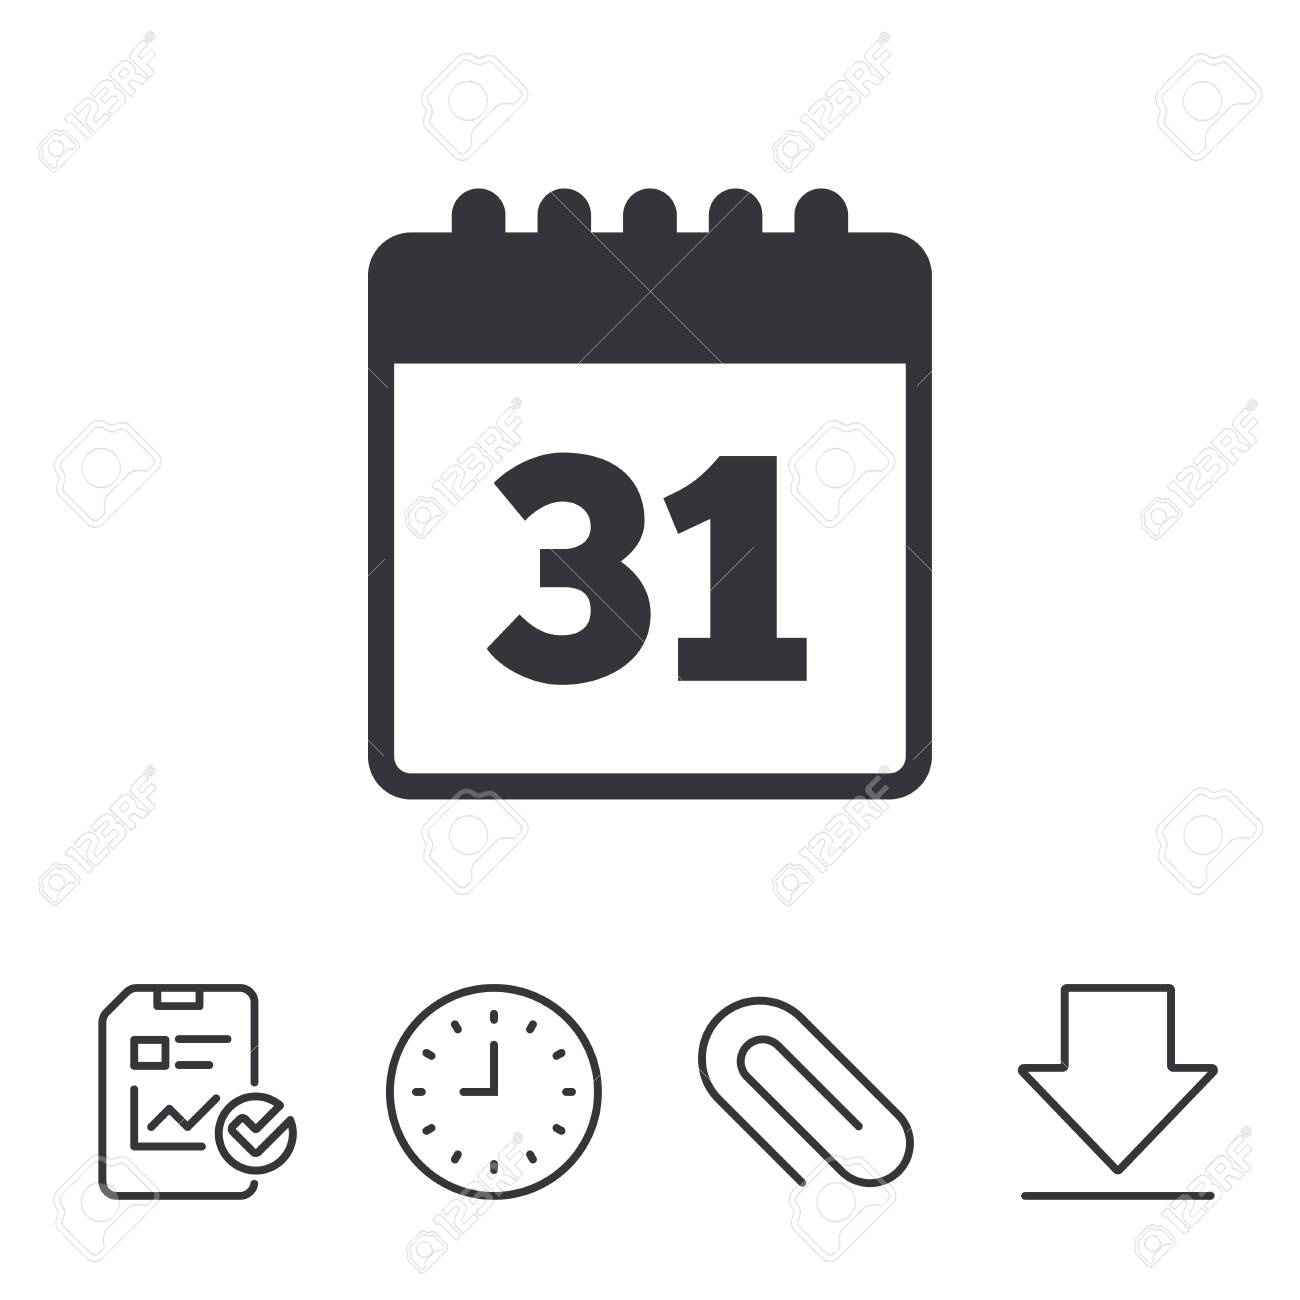 Calendar Sign Icon. Date Or Event Reminder Symbol. Report, Time.._Calendar Date Event Icon